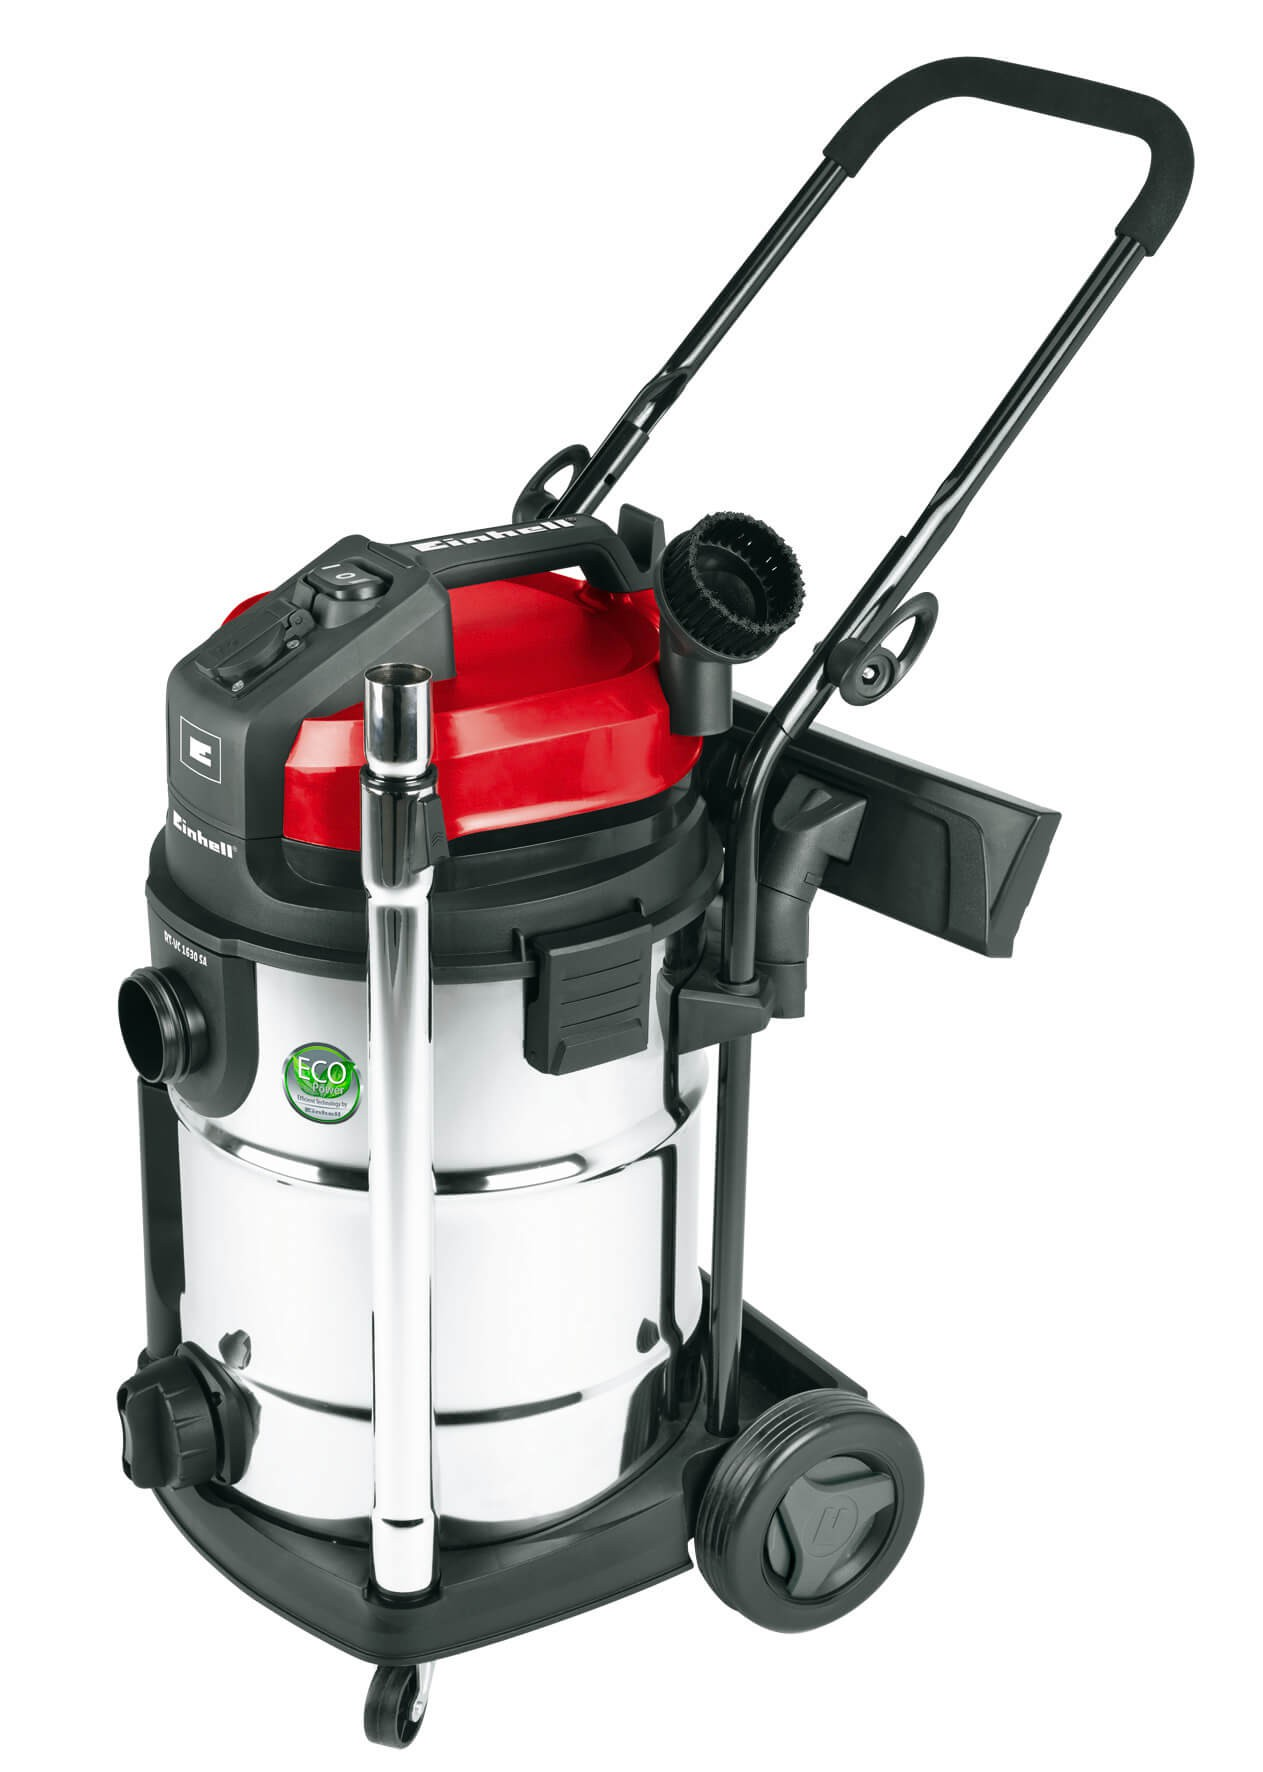 Einhell TE-VC 2230 SA Alleszuiger / bouwstofzuiger - 1150W - 30L